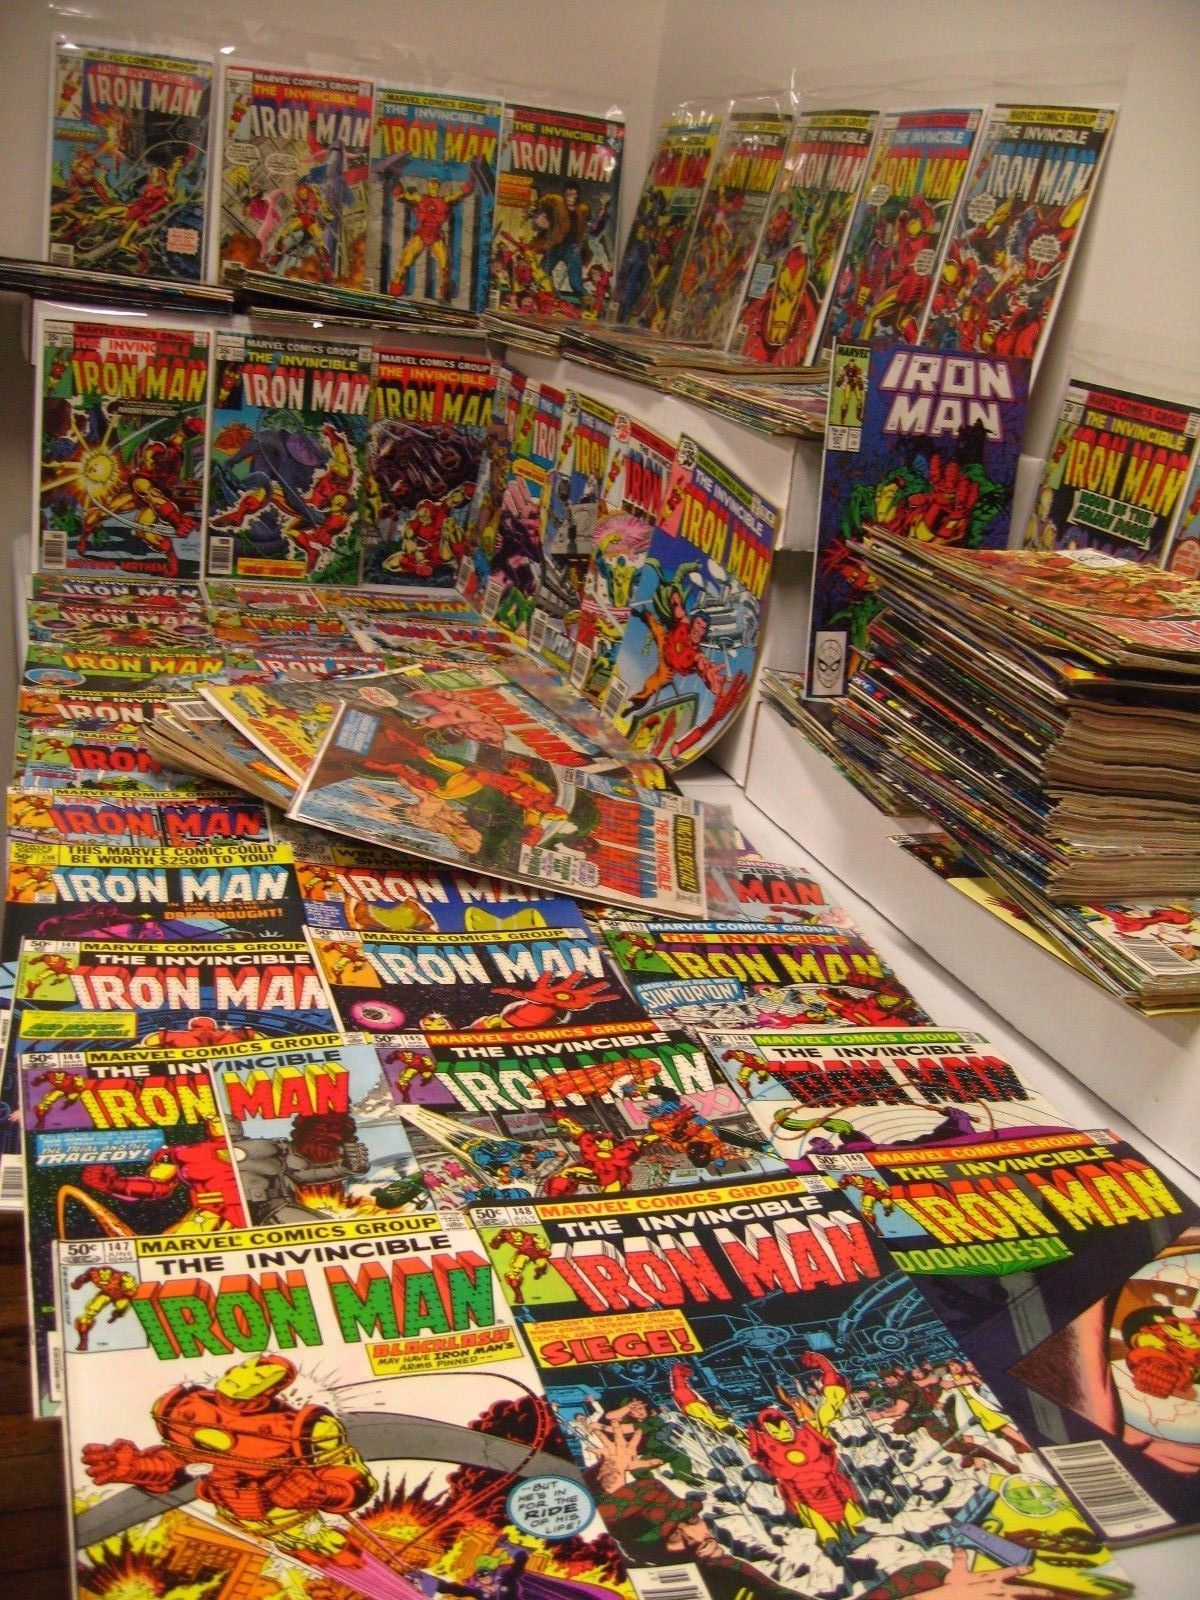 Iron Man #98-300 Mostly complete inc + Annuals #1-14 + Iron Man Vol 2 #1, 2